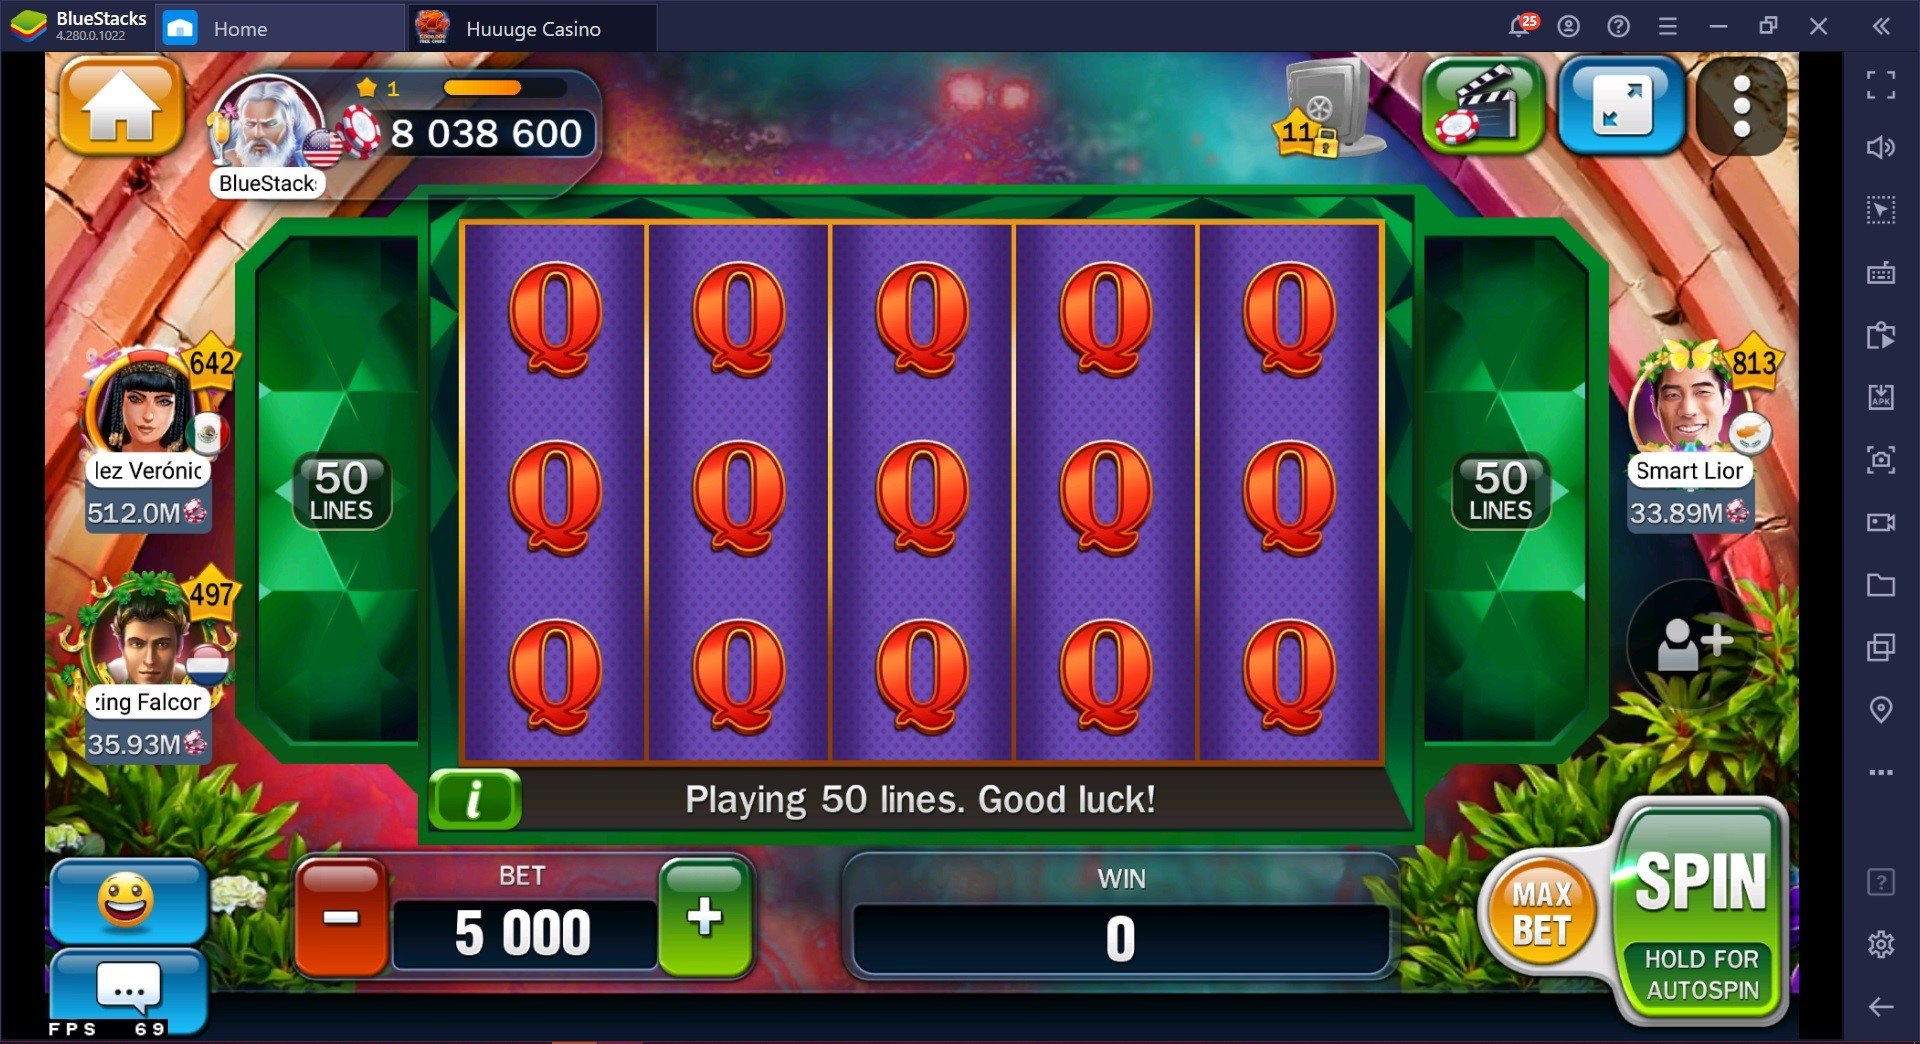 How to play Huuuge Casino Slots on PC with BlueStacks